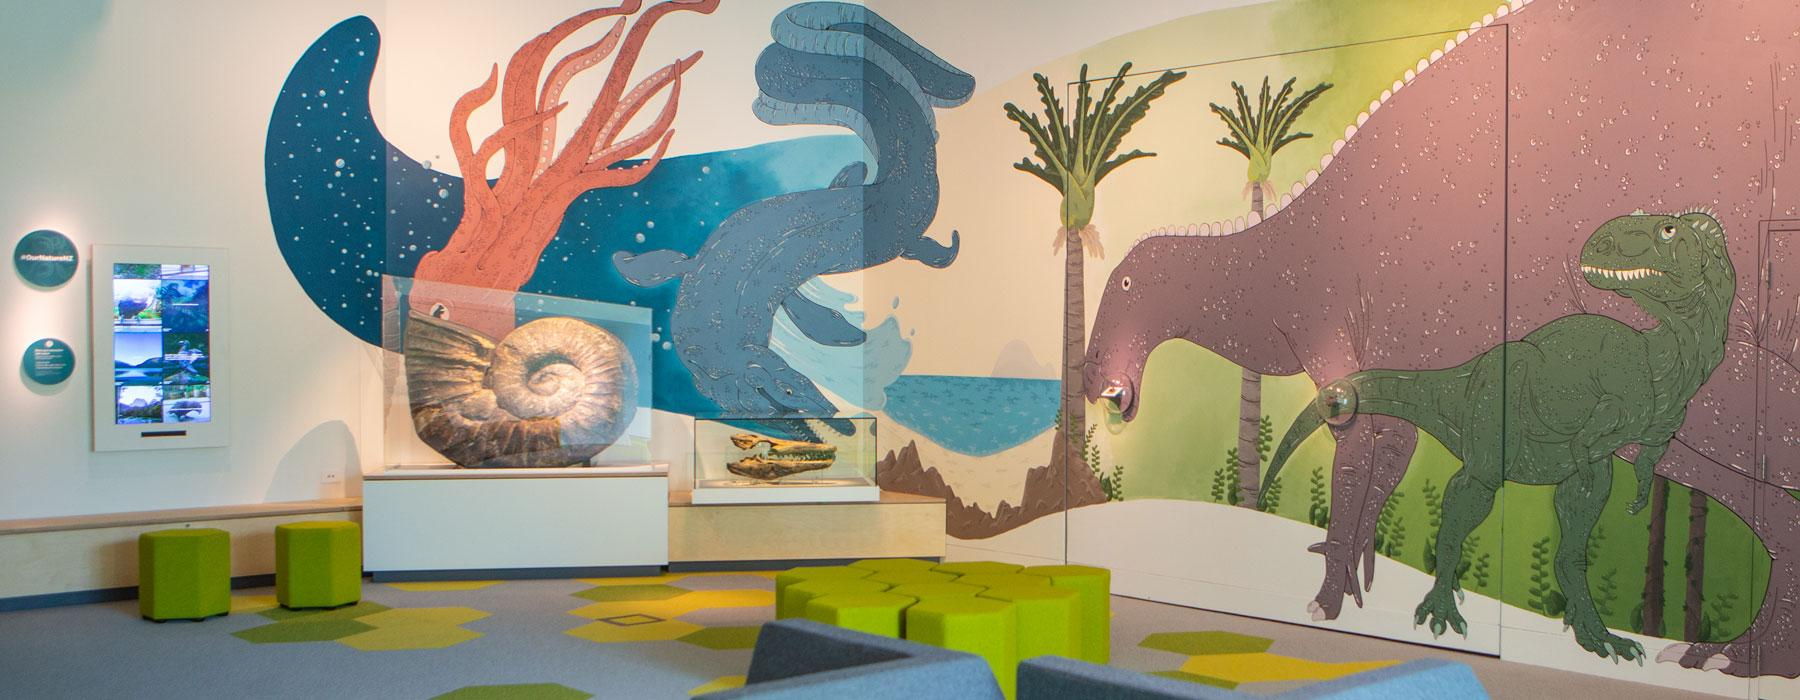 A room with dinosaurs painted on the wall and real fossils displayed